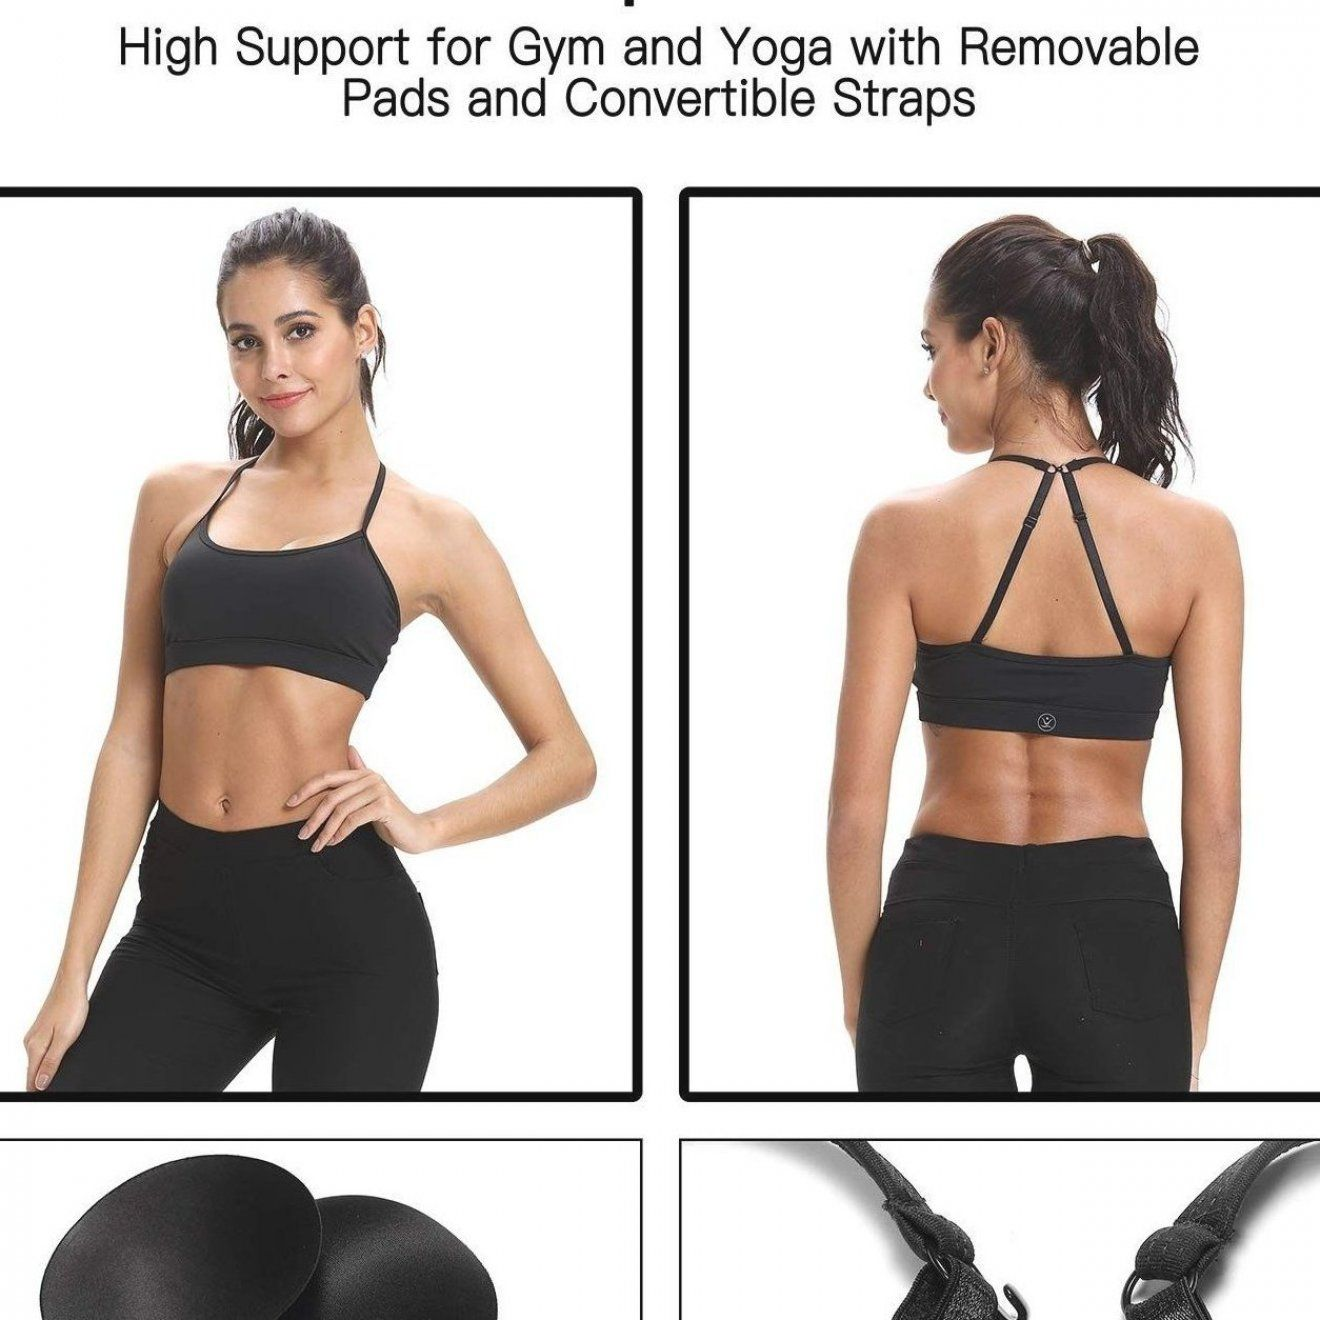 Women s Workout Clothes - Women s Sports Bras Yoga Bra - CH18I74UGK5 - Sports   Fitness Clothing  Wo...